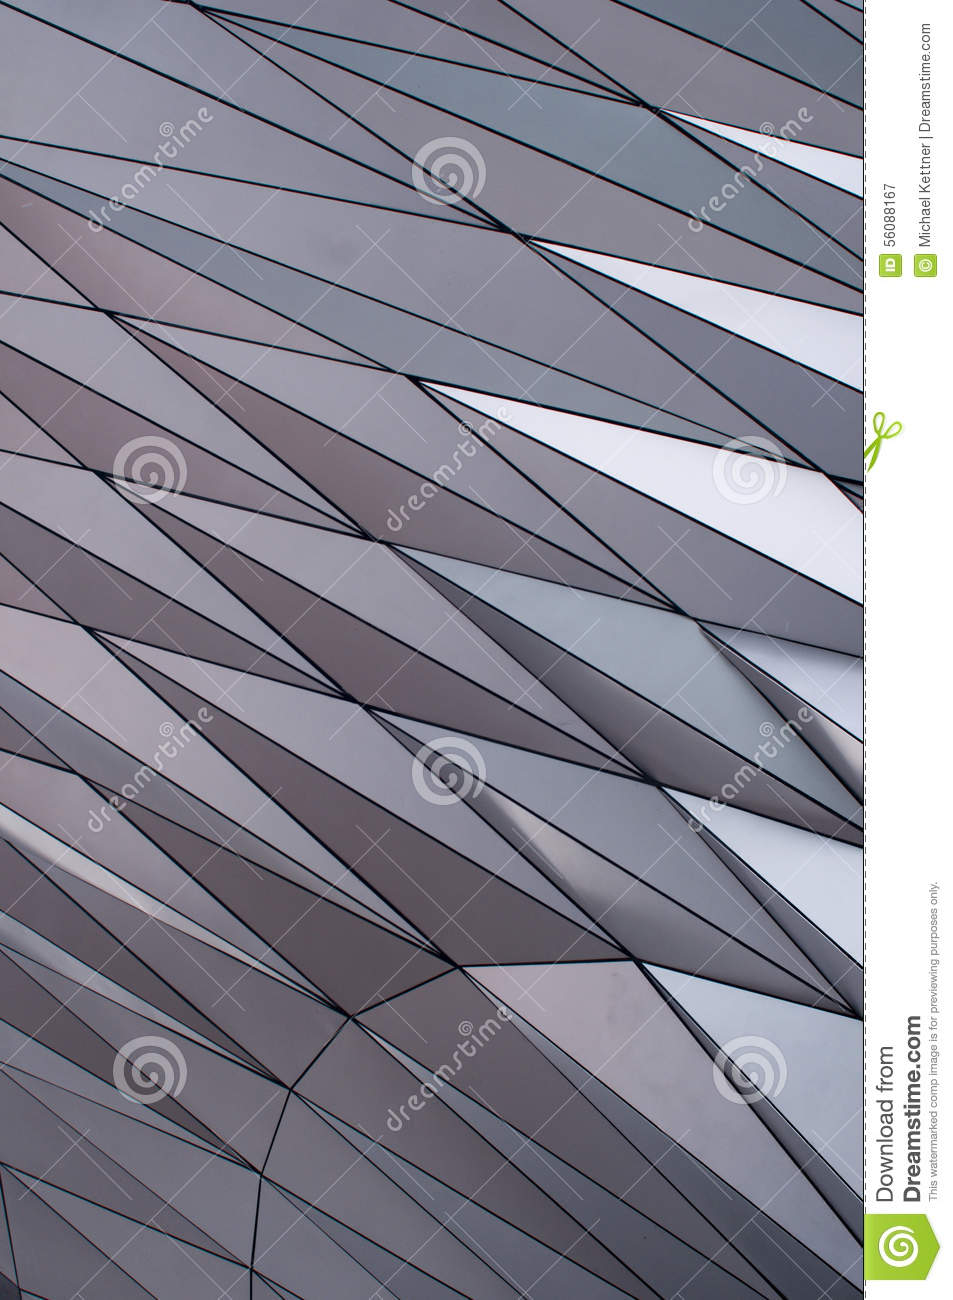 modern facade and geometric form stock image - image of triangle